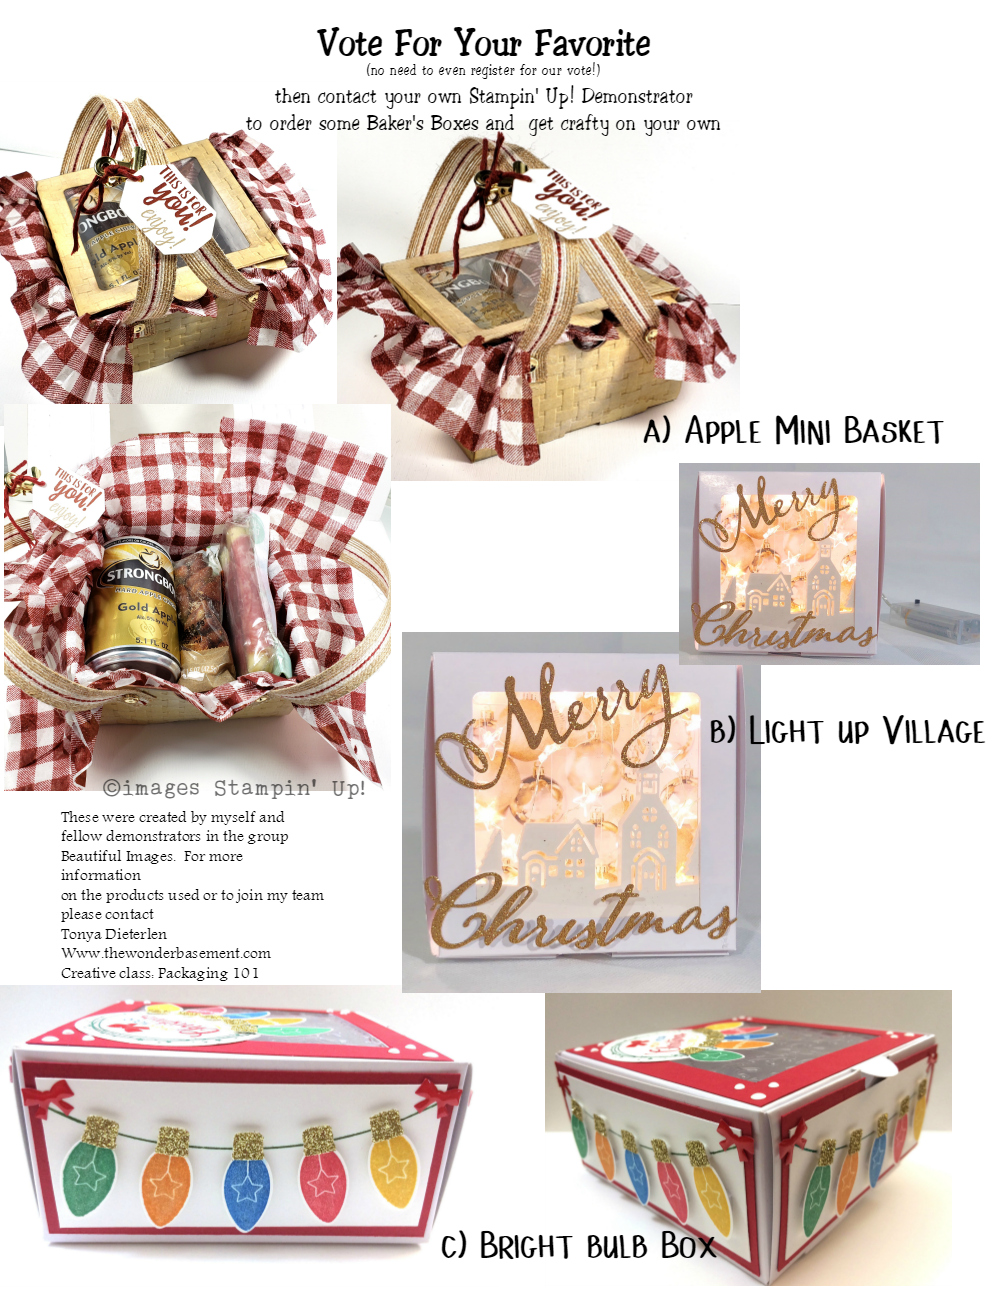 A. Apple Mini Basket  B. Light up Village  C. Bright Bulb Box